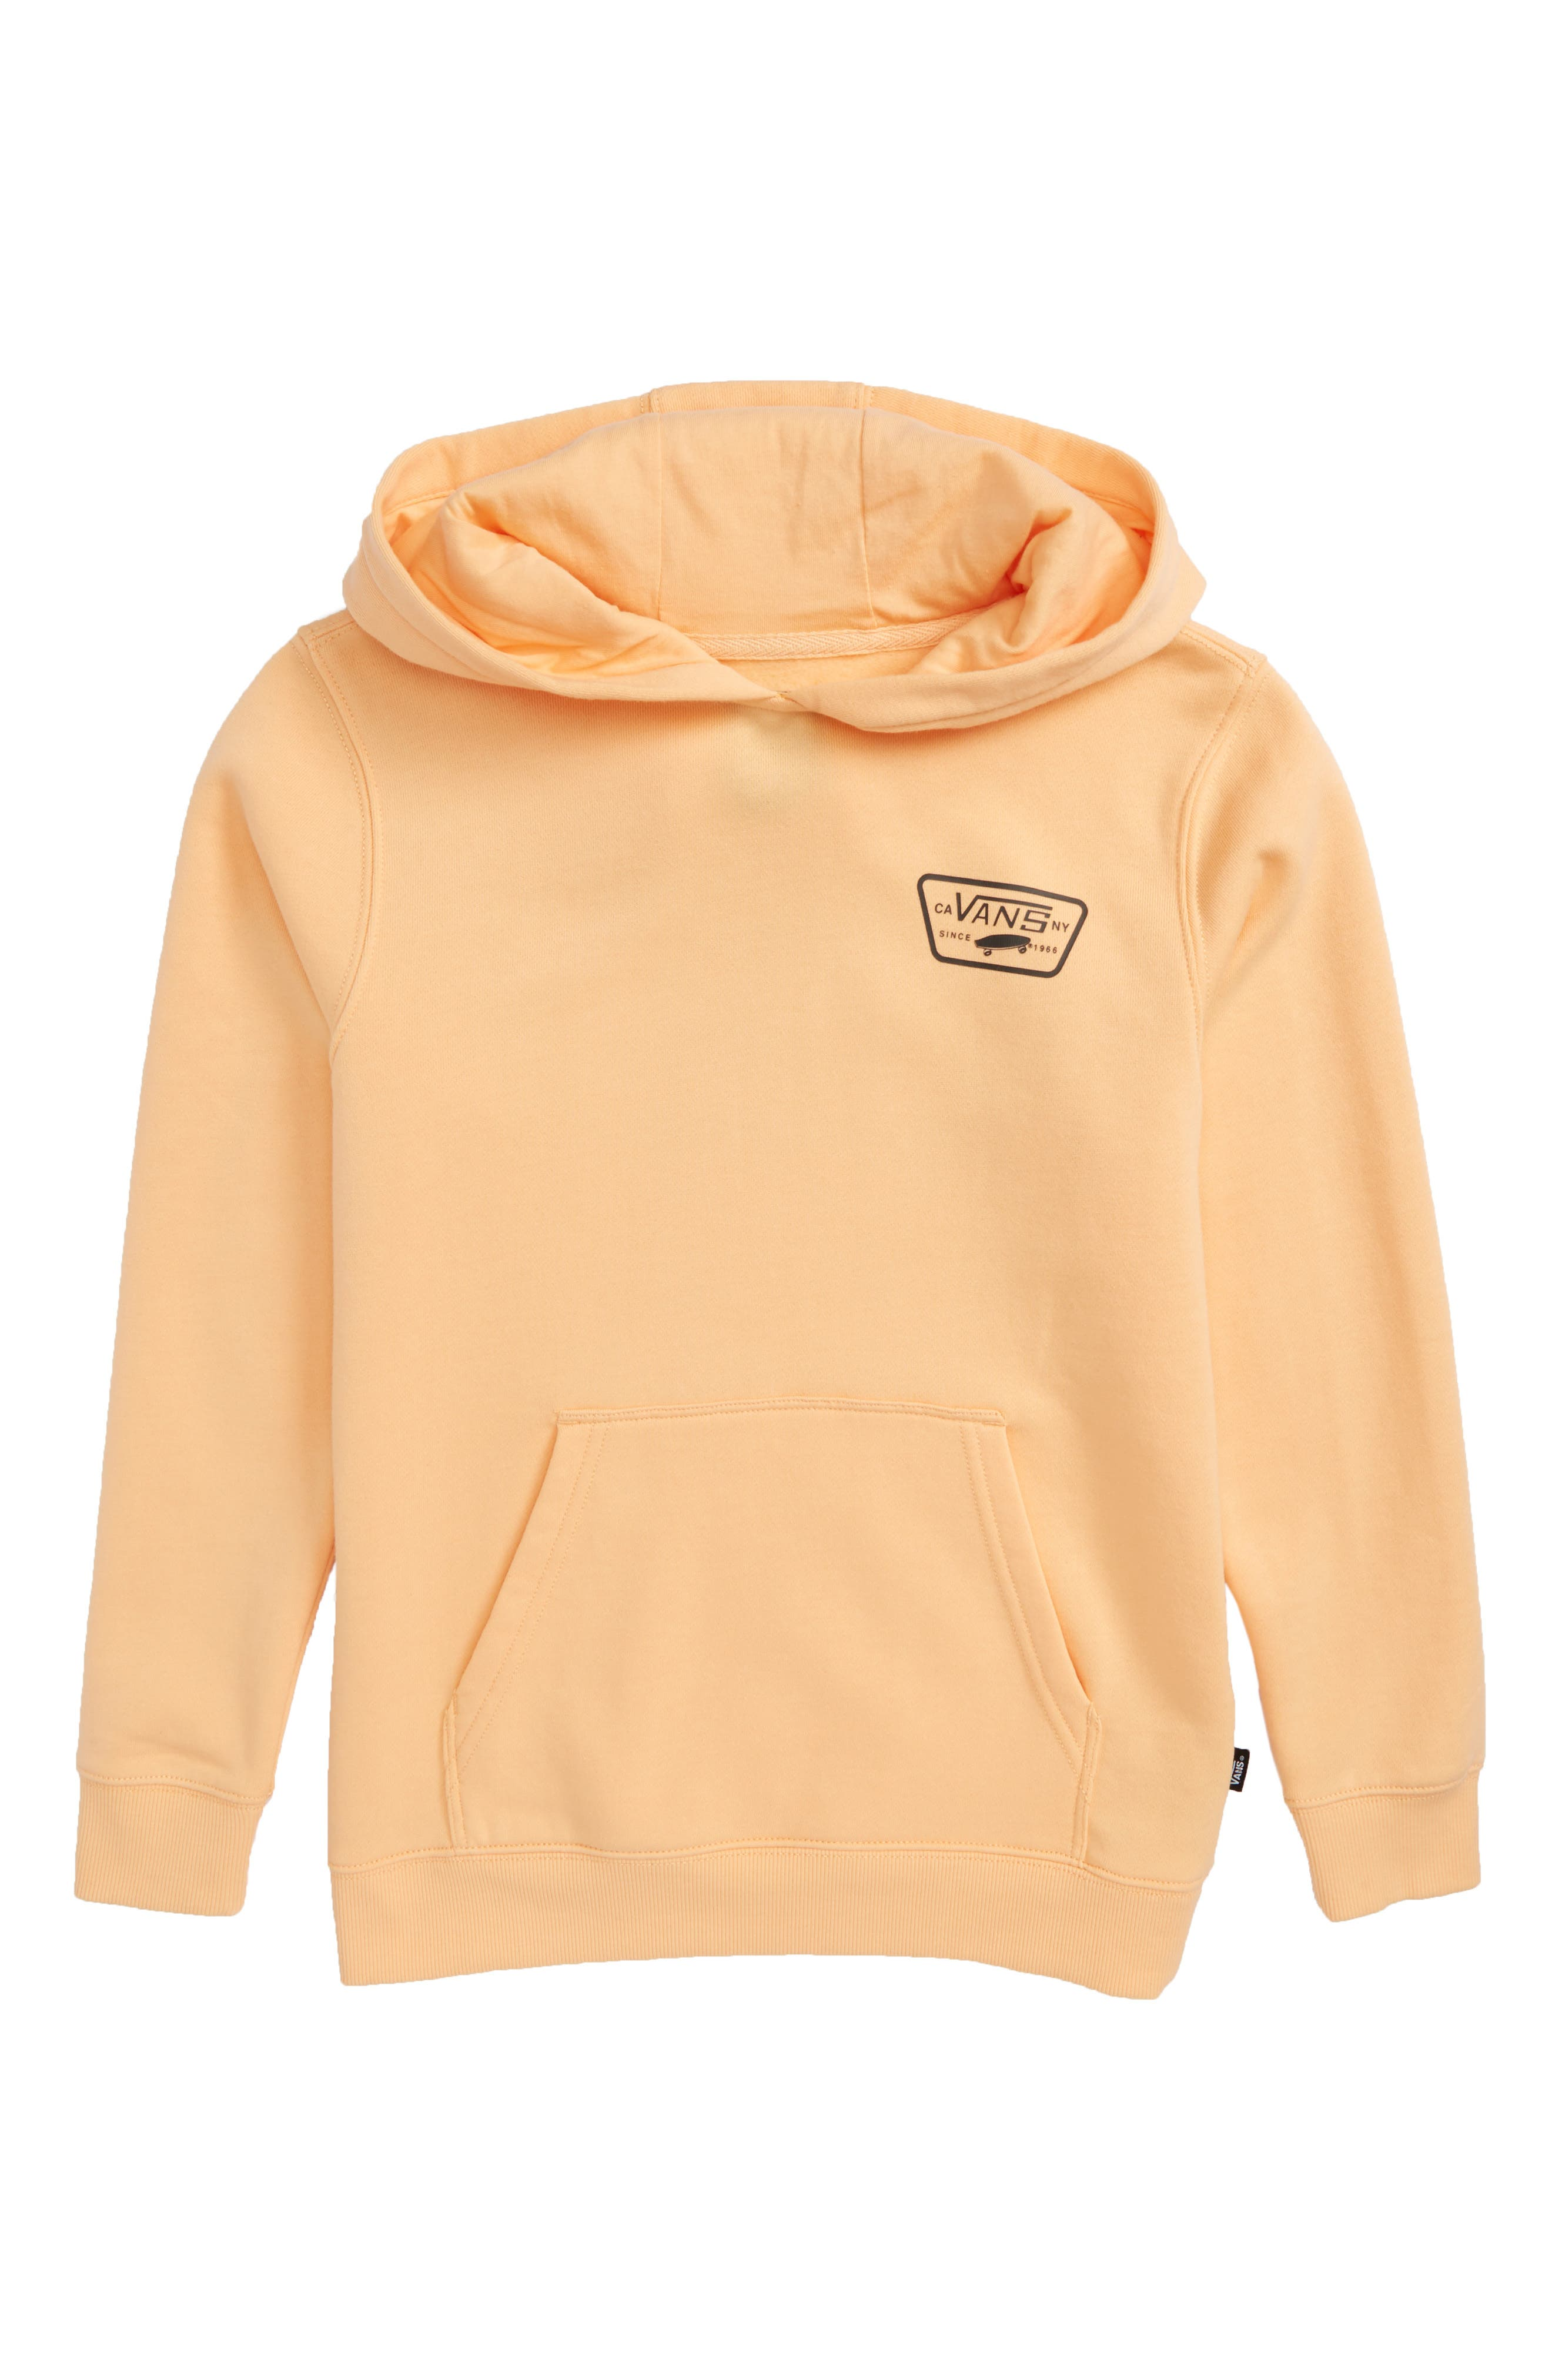 'Full Patched' Fleece Hoodie,                         Main,                         color, Apricot Ice/ Black